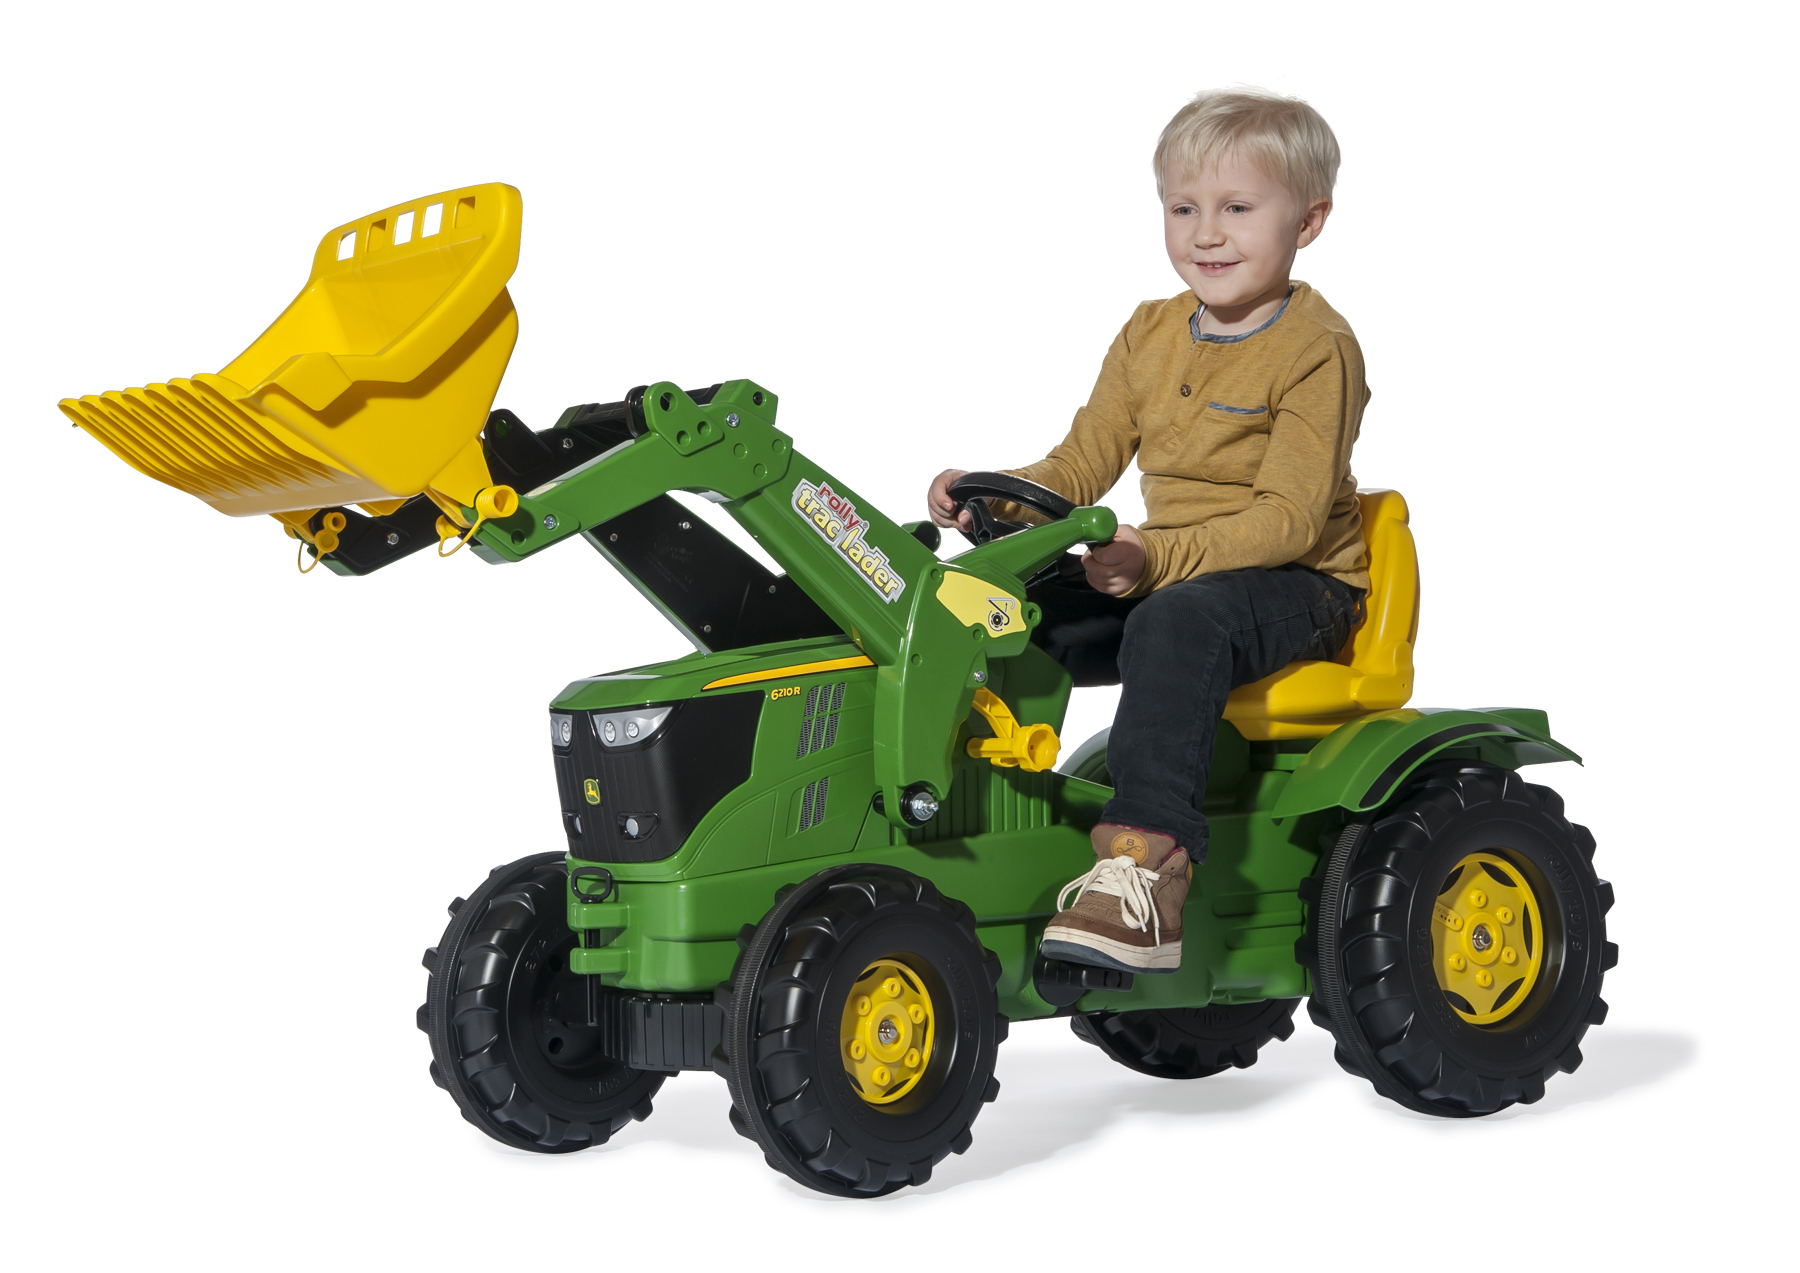 7:15am: John Deere 6210R ride-on tractor